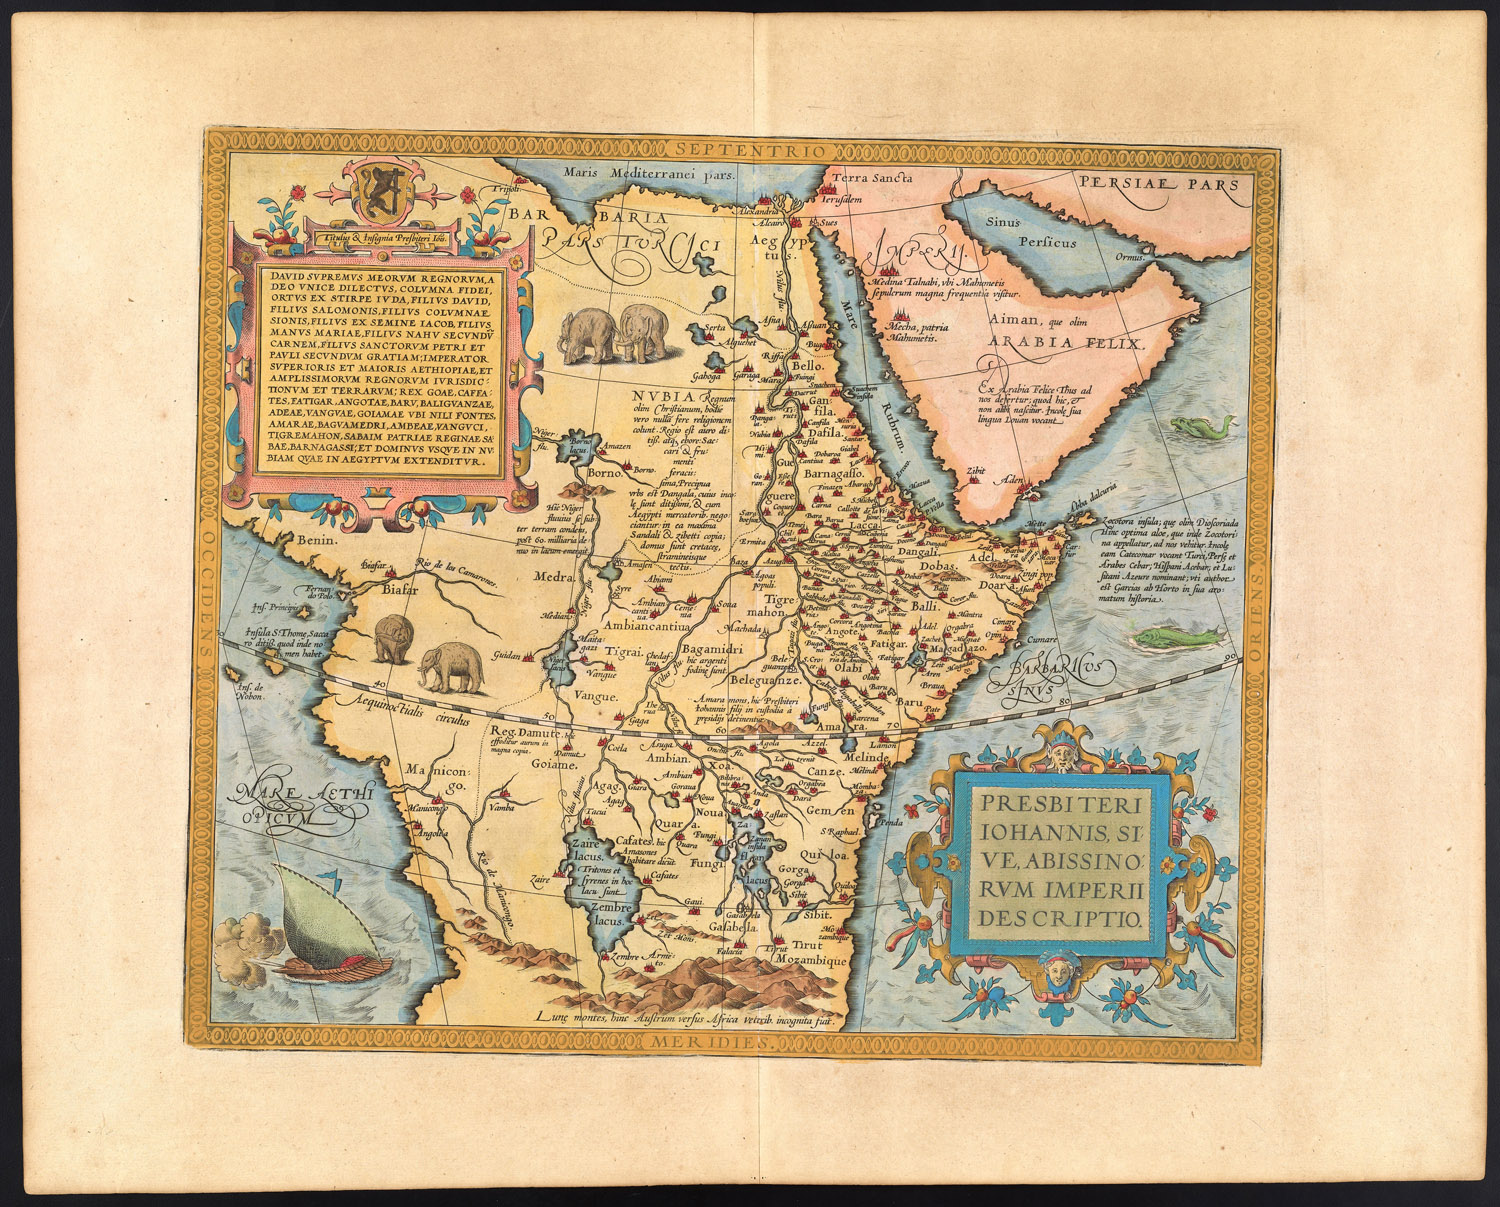 Abraham Ortelius,  Presbiteri Iohannis, sive, Abissinorum imperii description  (Amsterdam, 1579) (Van der Krogt 1997– , 3: map 8720:31): Osher Map Library and Smith Center for Cartographic Education, University of Southern Maine; Osher Collection. See http://www.oshermaps.org/map/310.0001